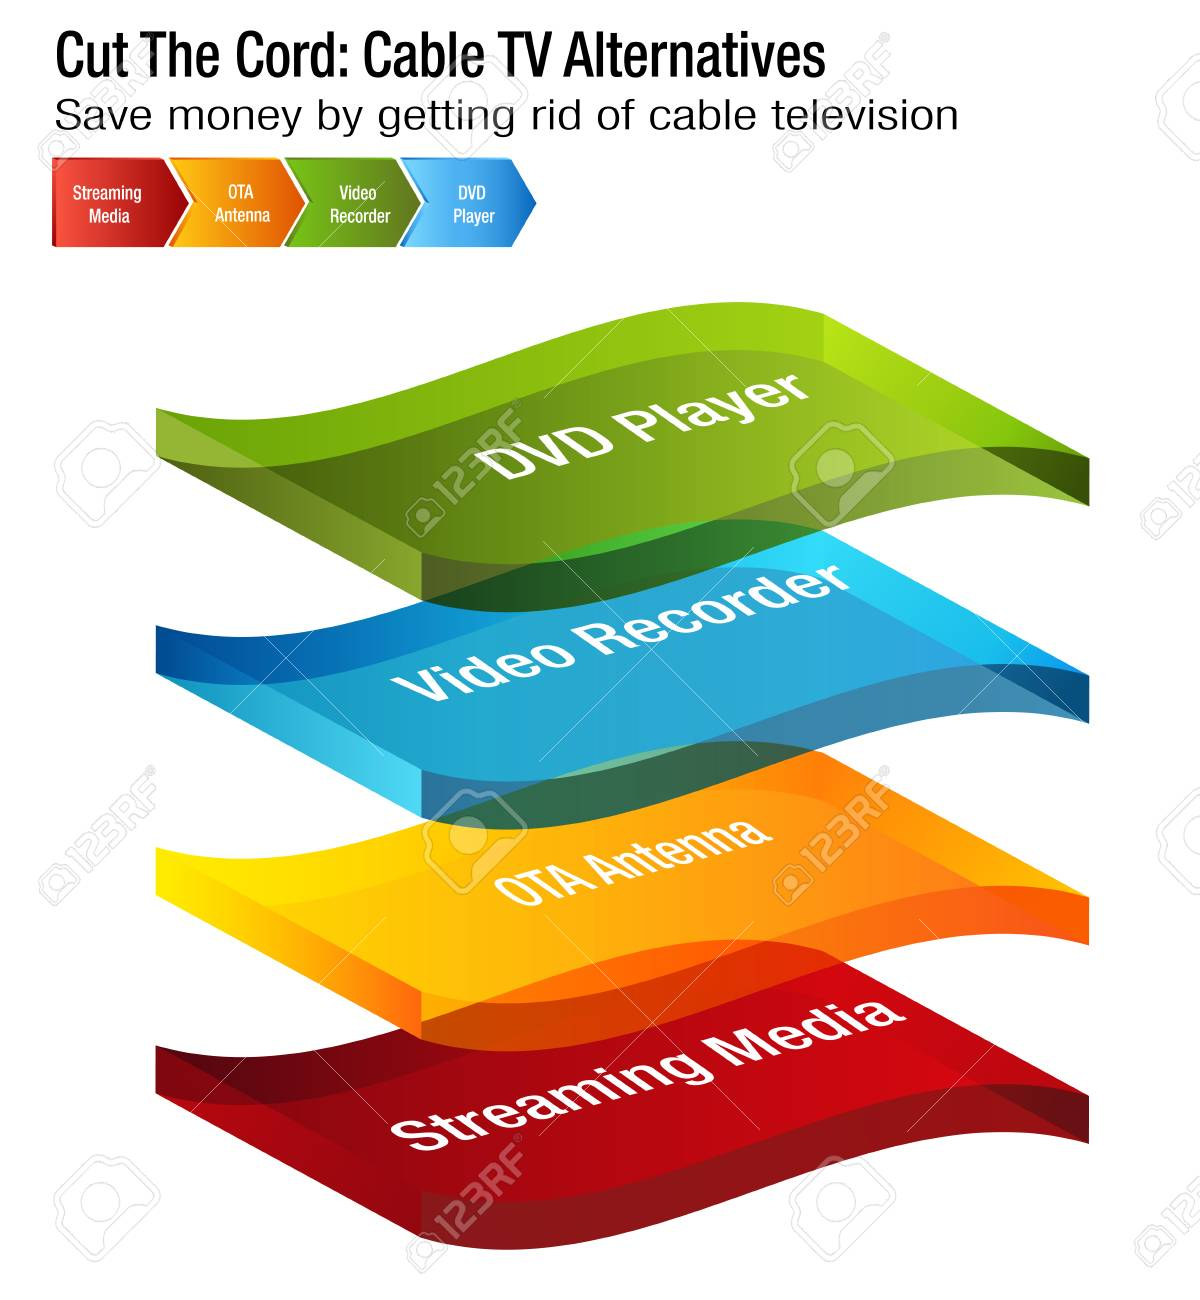 An Image Of A Cut The Cord Cable Tv Alternatives Chart Royalty Free Diagram Stock Vector 97470073